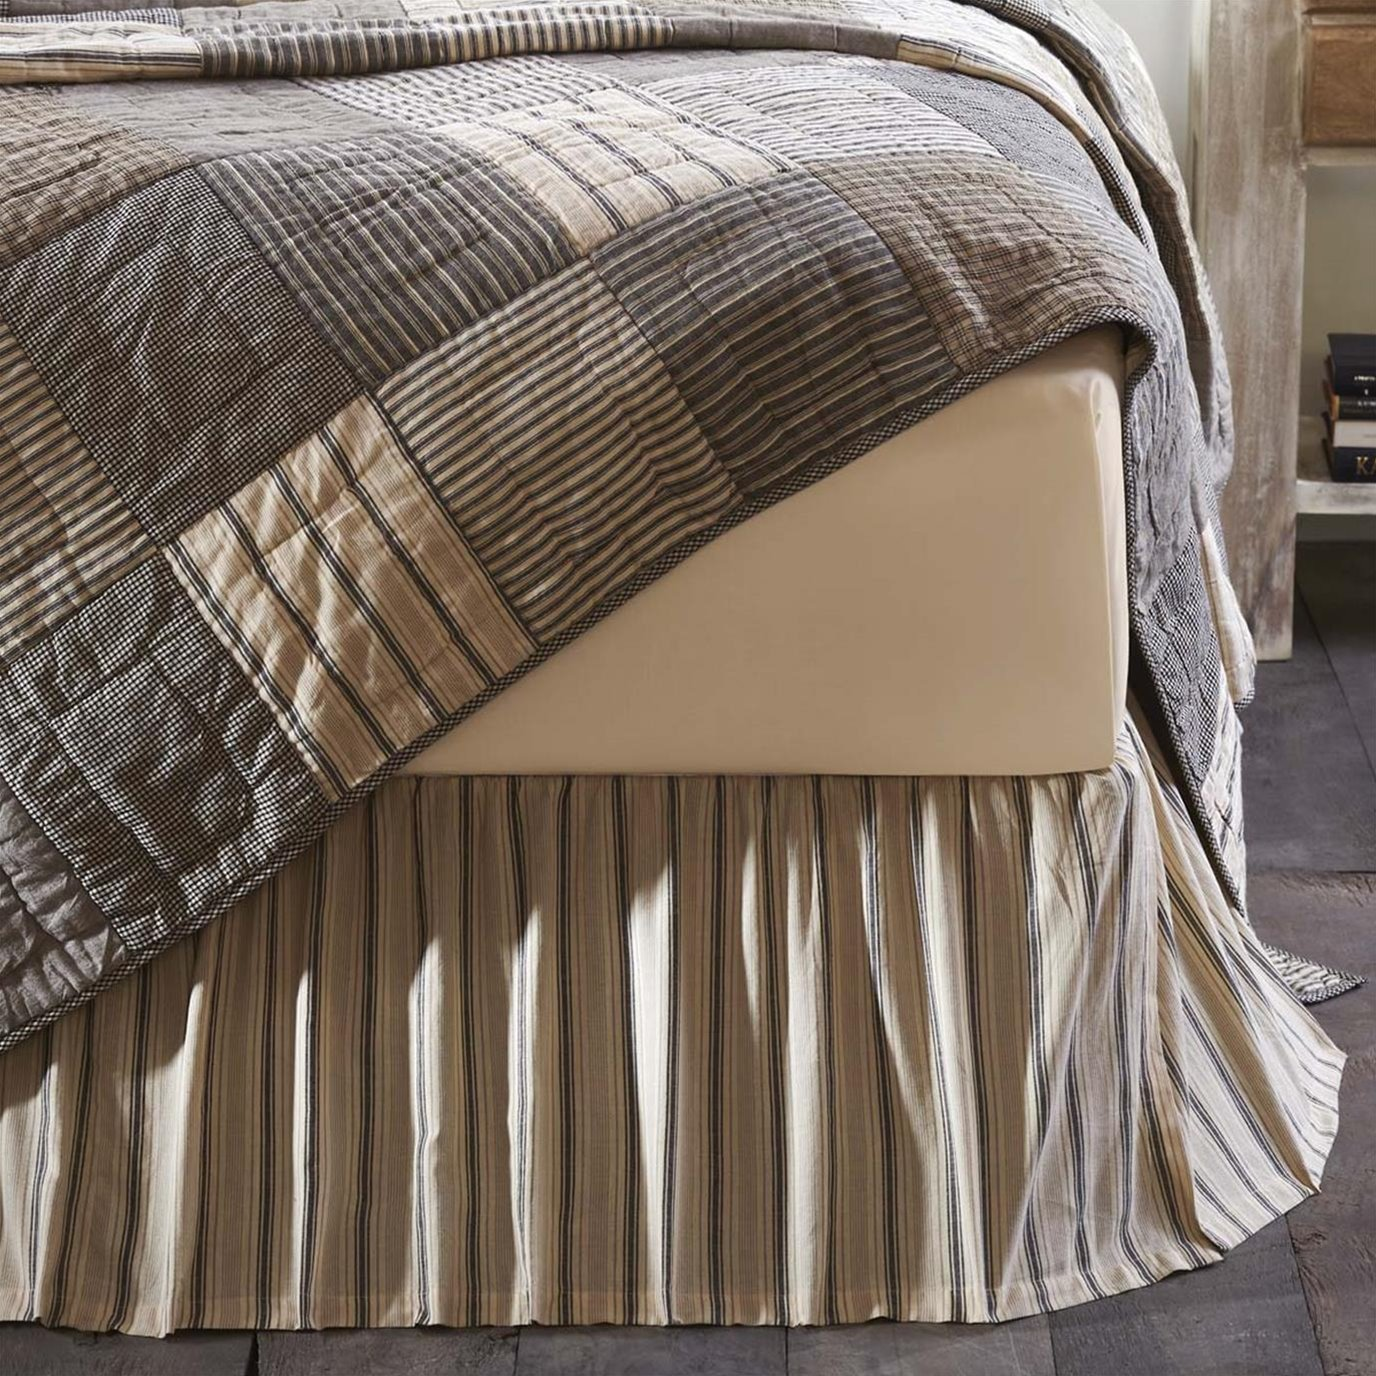 Sawyer Mill Charcoal Twin Bed Skirt 39x76x16